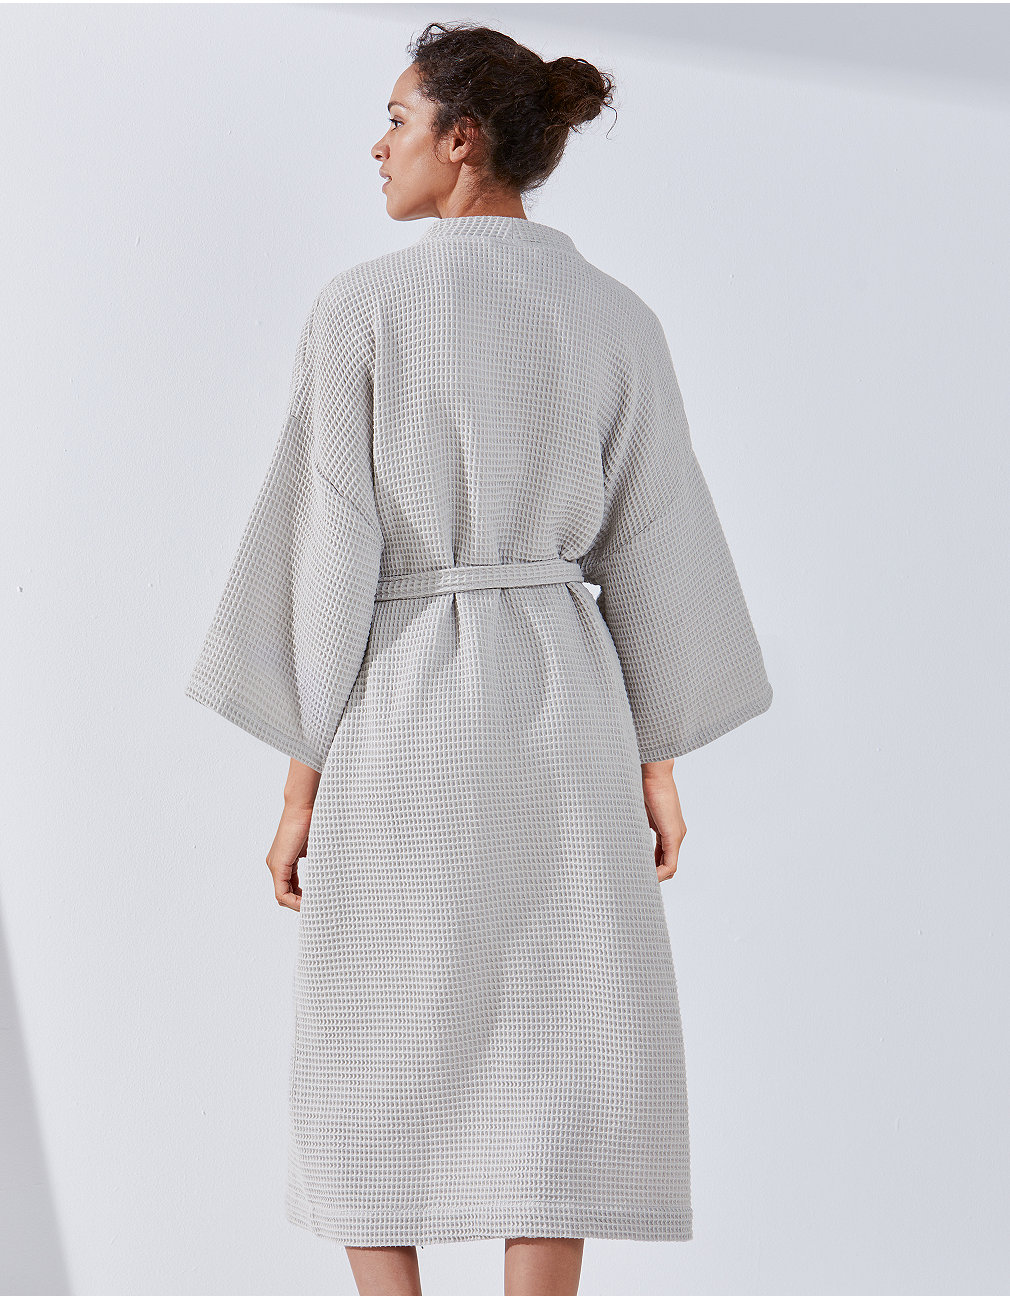 Lightweight Waffle Robe | Robes & Dressing Gowns | The White ...